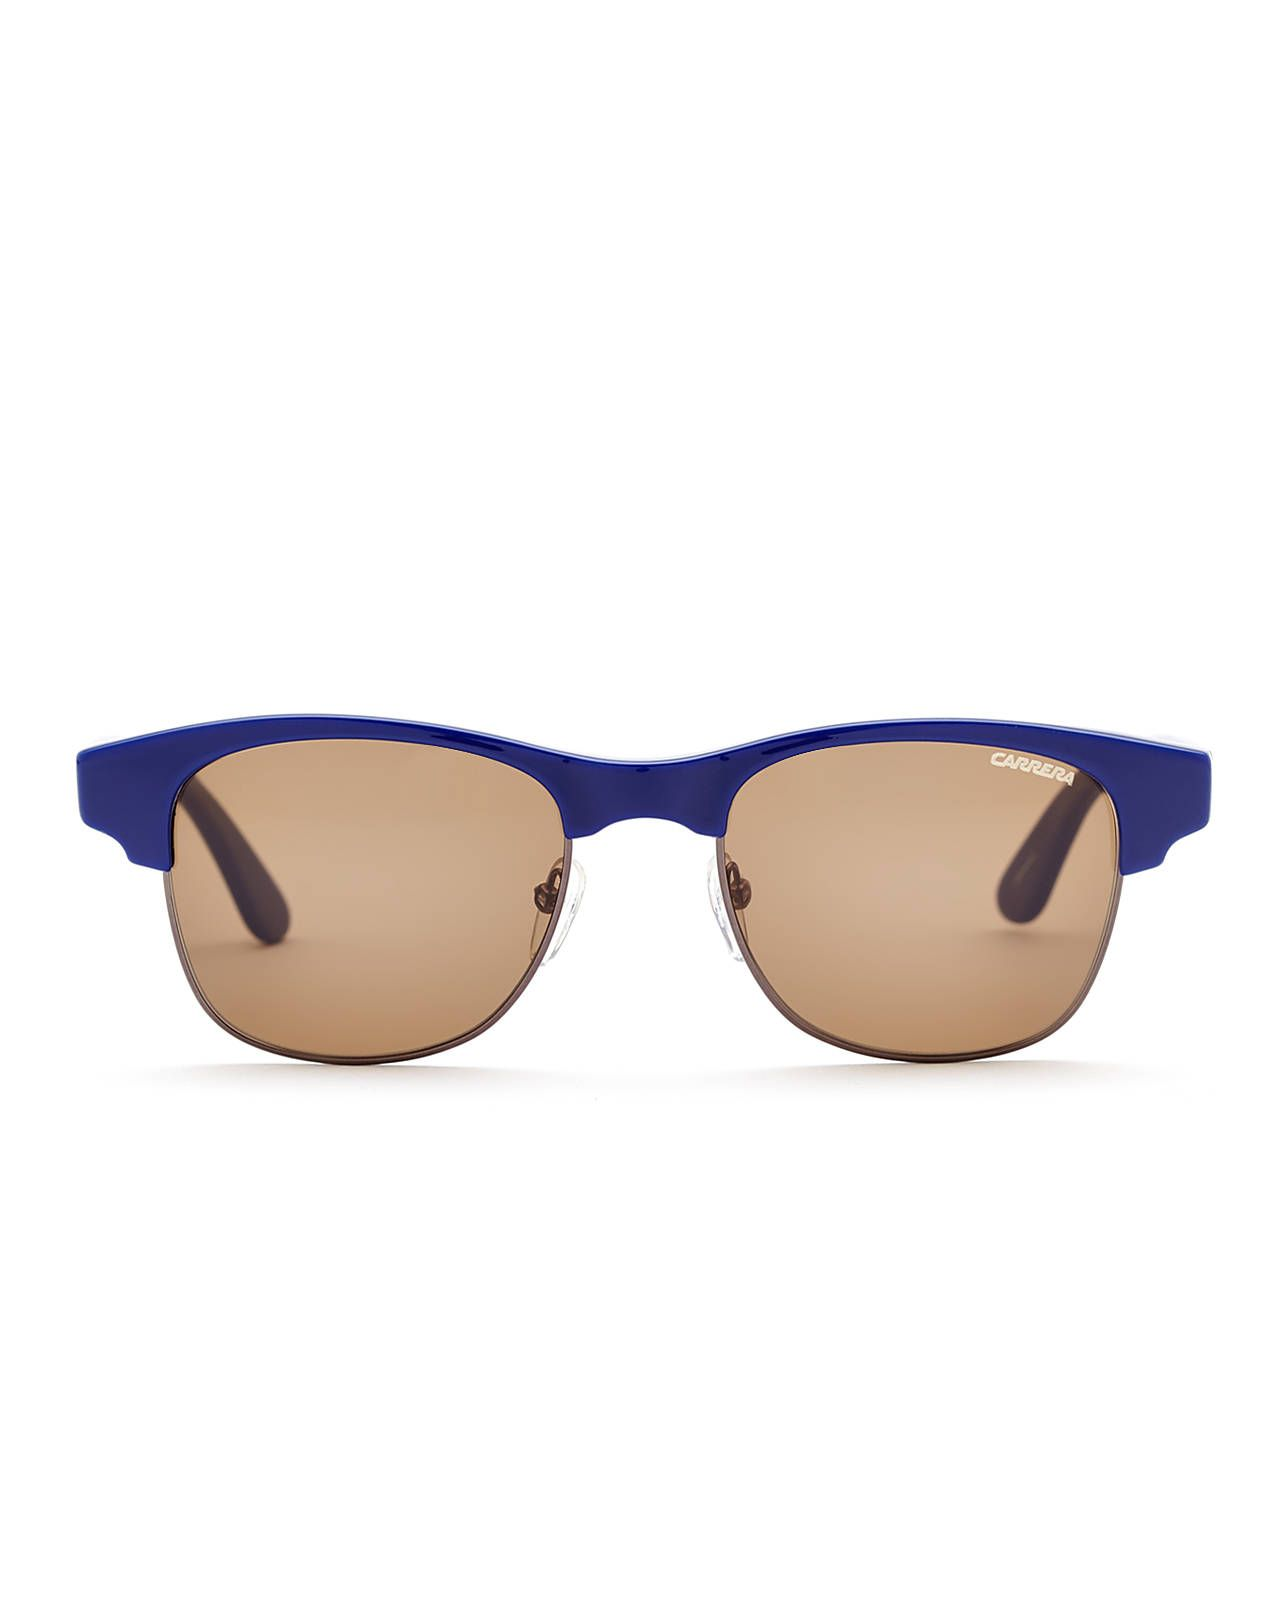 Hello, sunny day! CARRERA Blue Half-Rim Wayfarer Sunglasses are just your thing. #sunglasses #tinted #accessories #cool #beachholiday